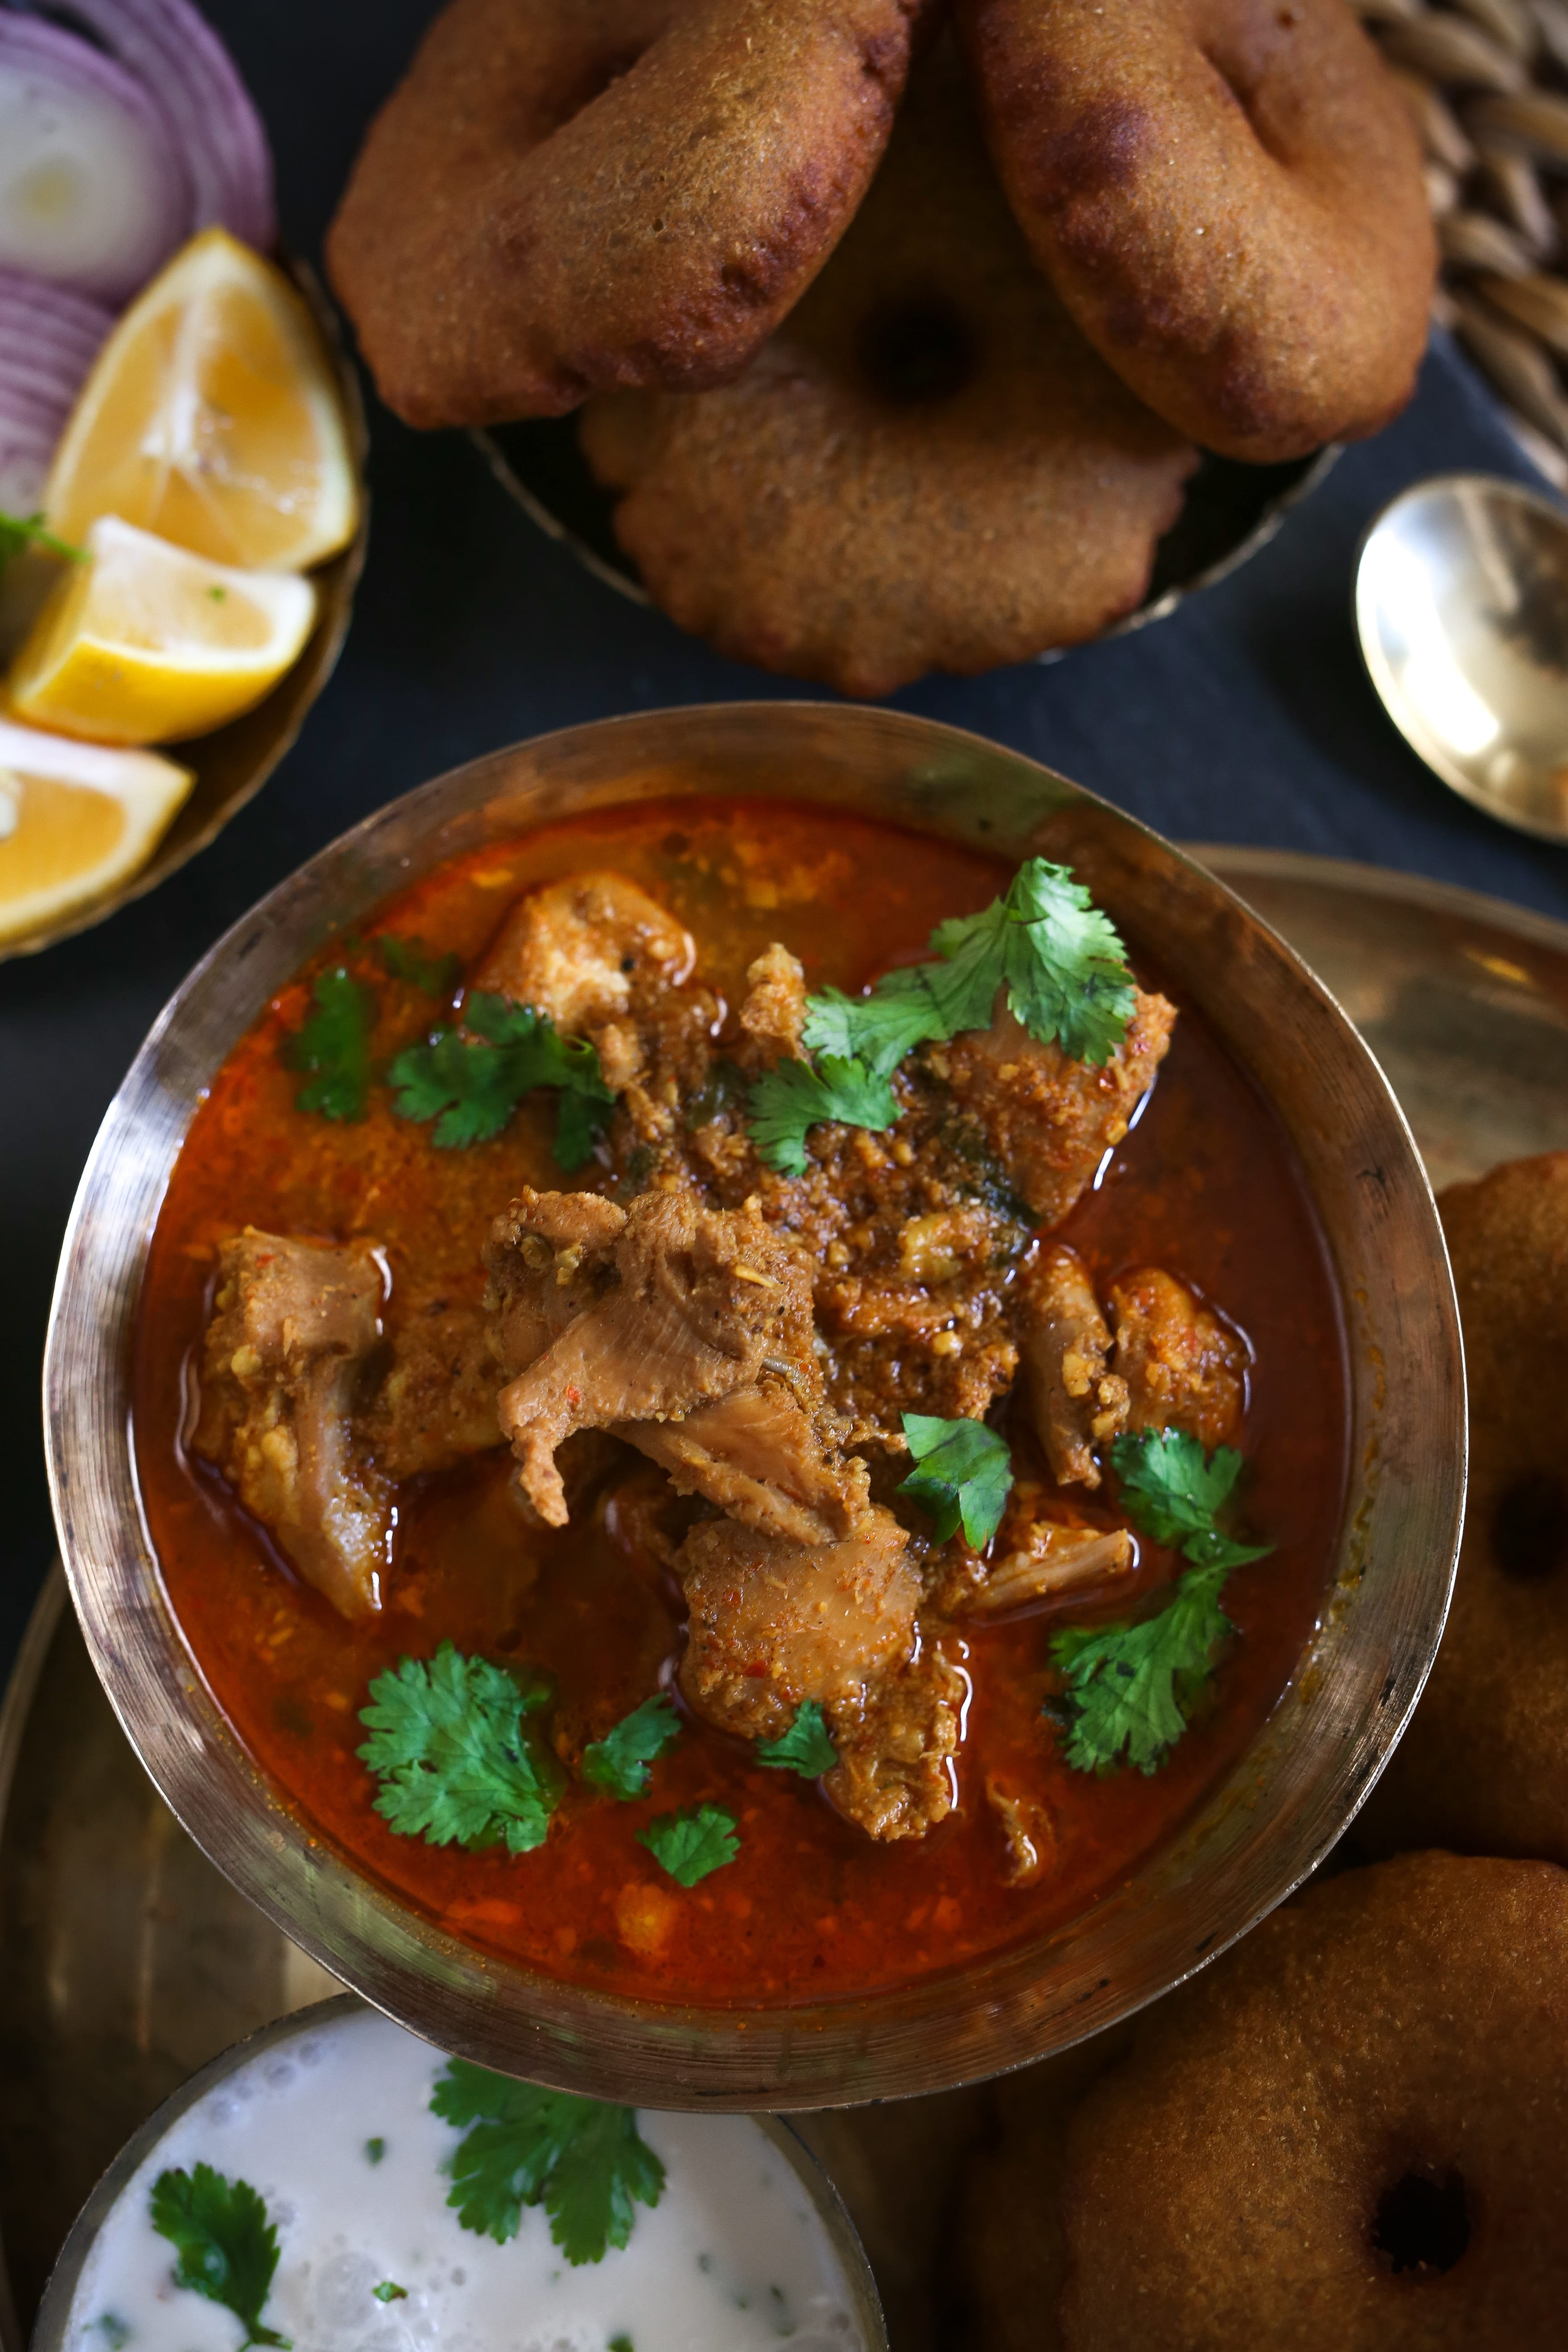 Kombdi Vade recipe, Sol Kadi recipe, Malvani Cuisine, Chicken curry, Malvani recipes, Indian recipes, food photography, foodblog, Malvan